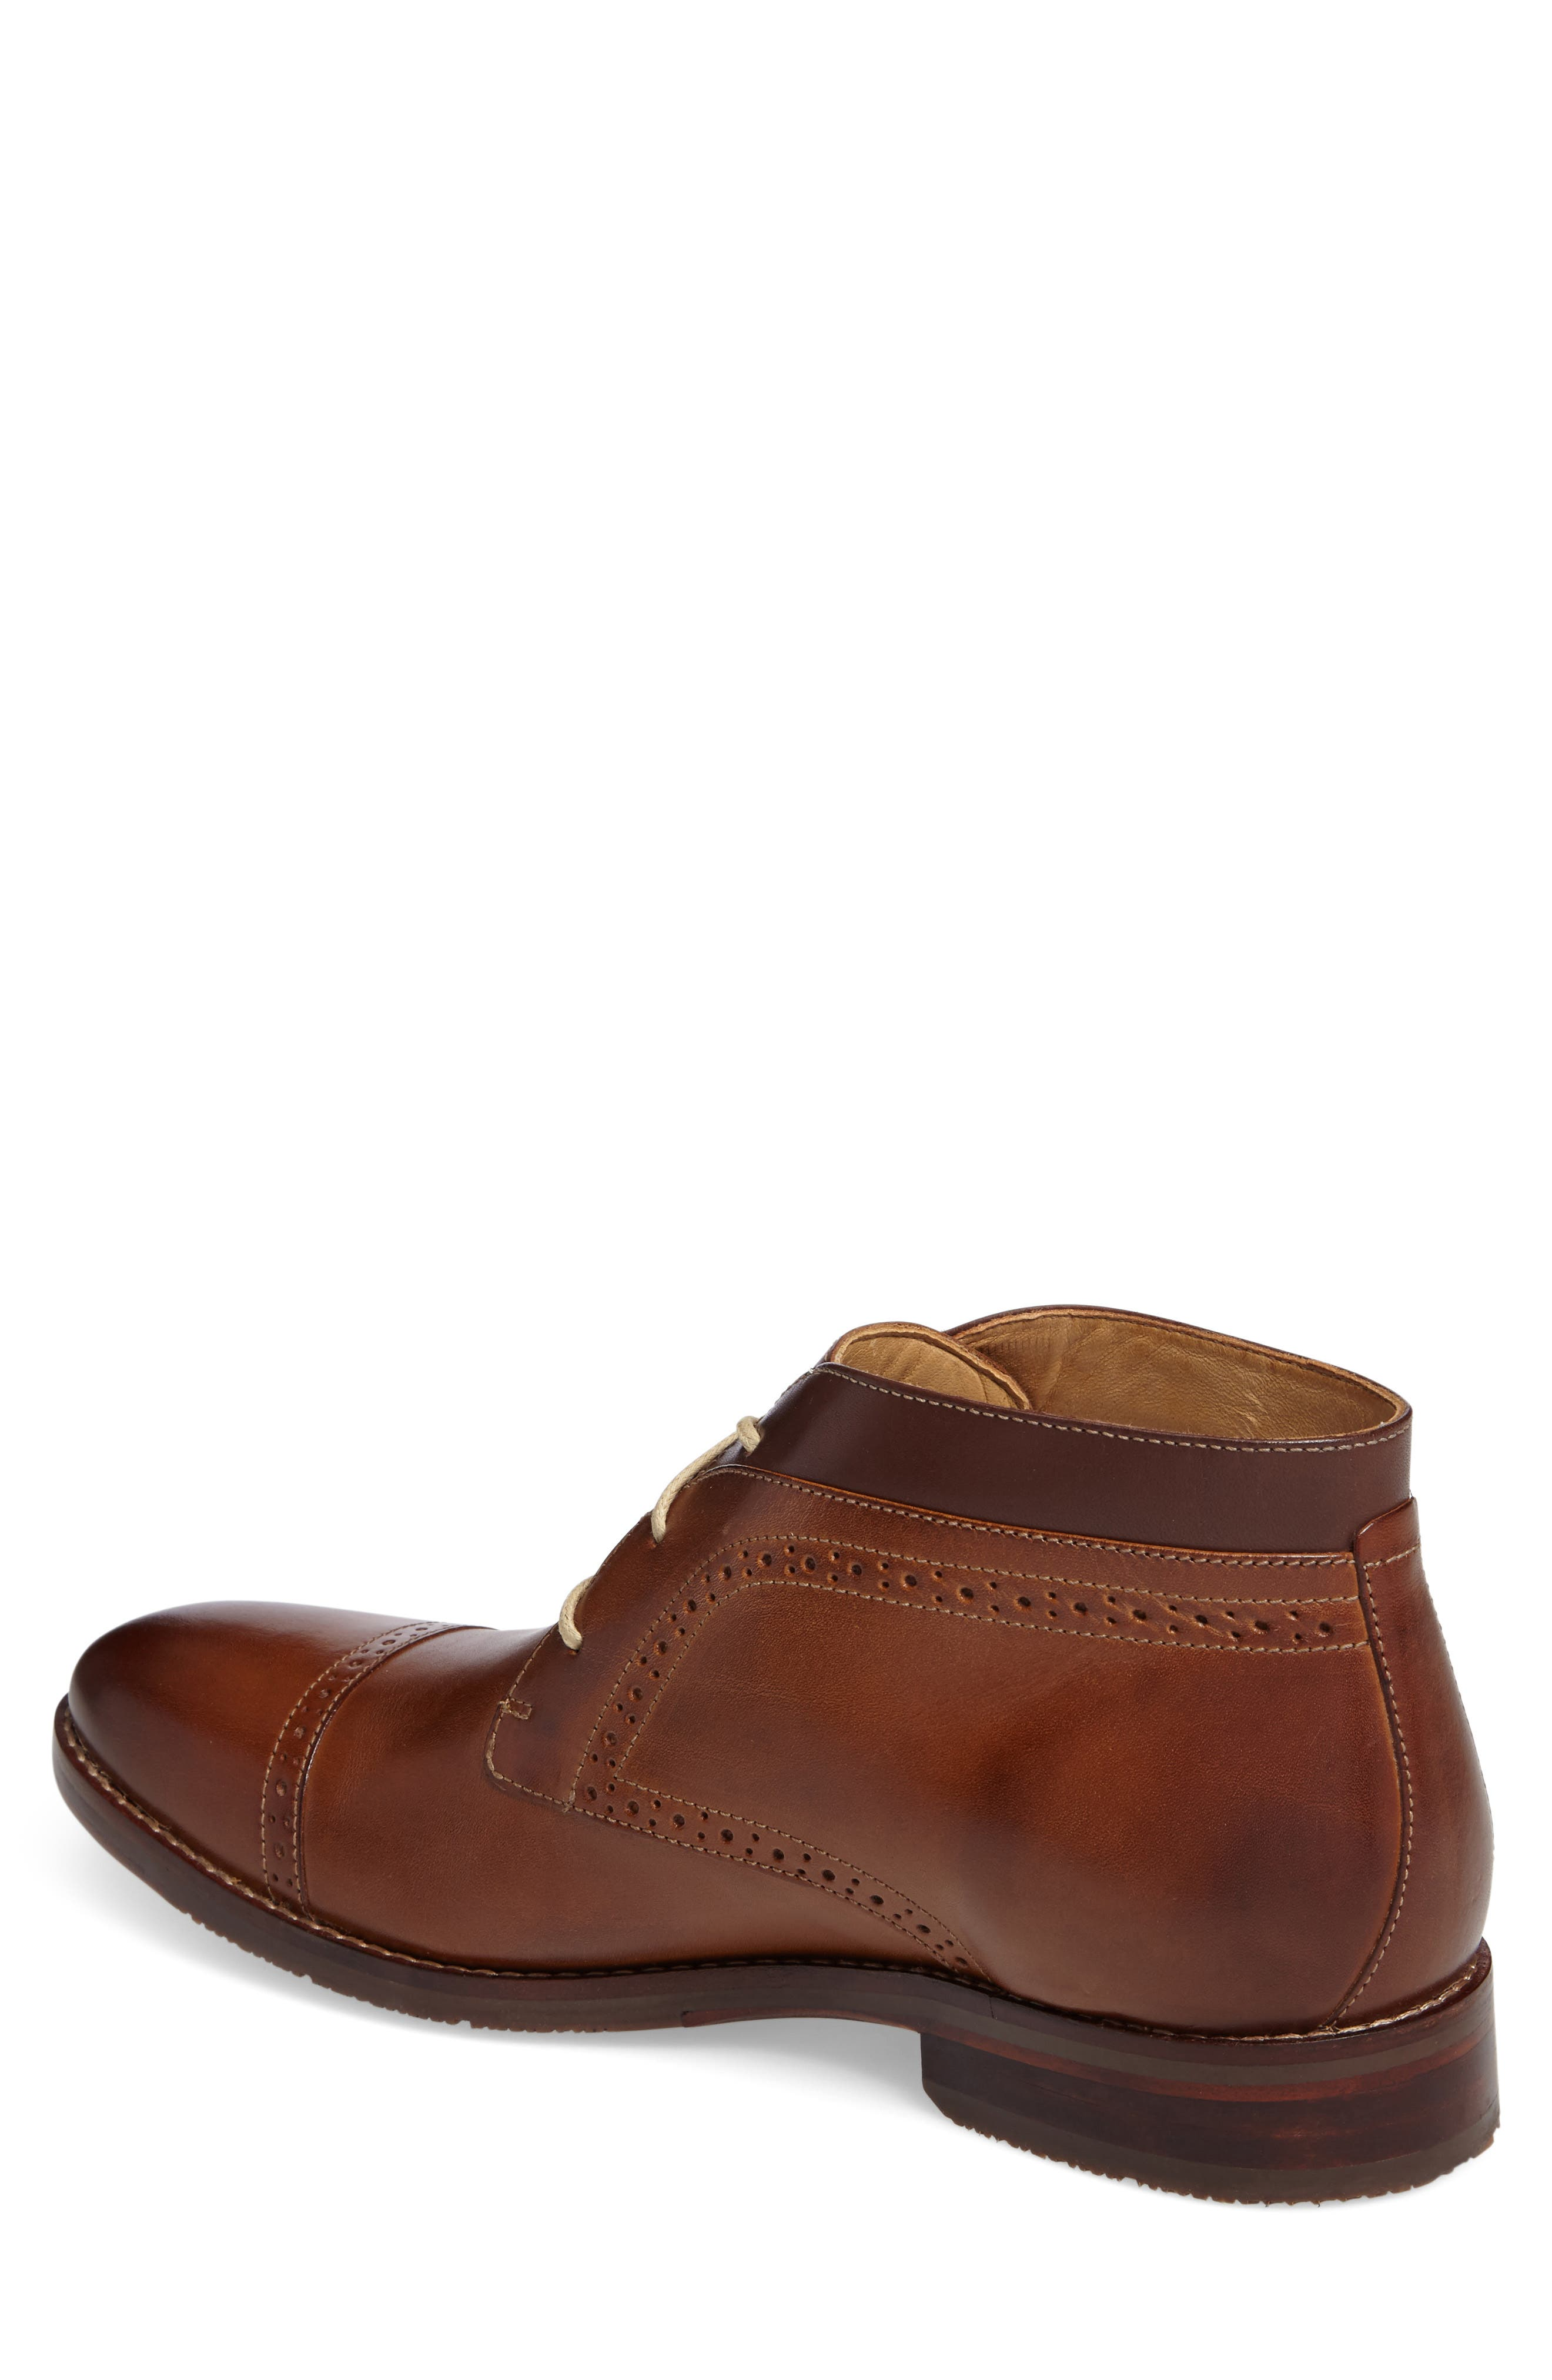 Garner Cap Toe Chukka Boot,                             Alternate thumbnail 2, color,